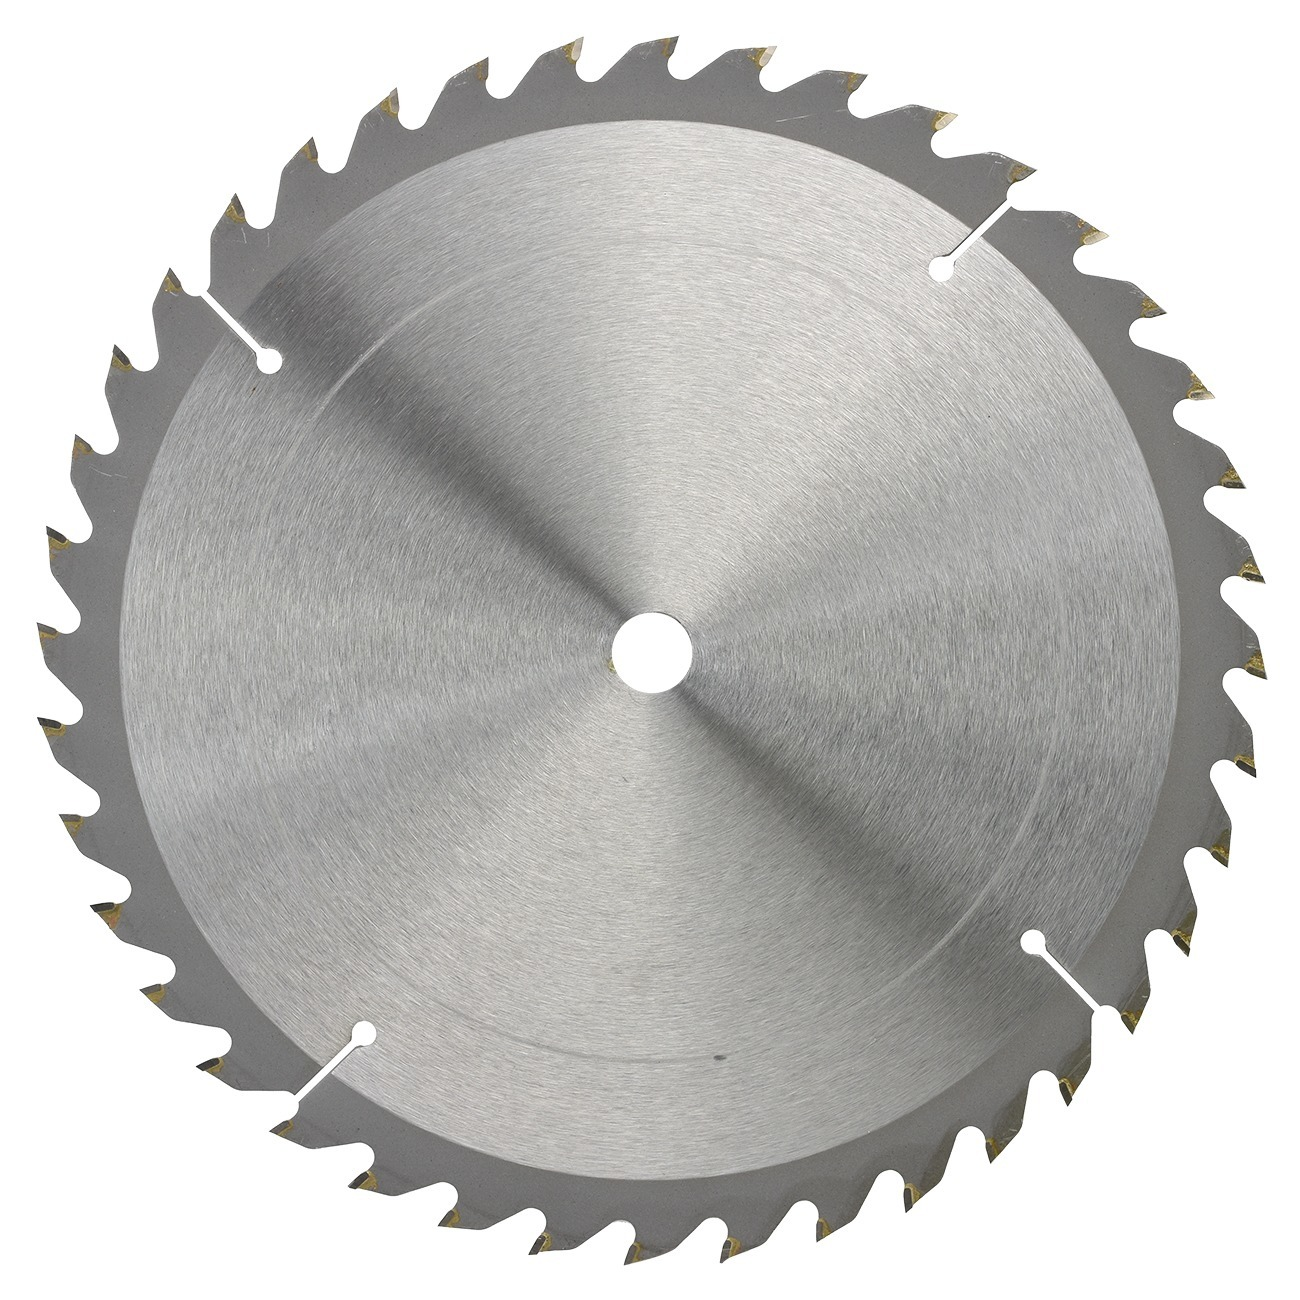 7 1 4 inch x 7 8 x 24t carbide tipped table saw blade for 10 inch table saw blades